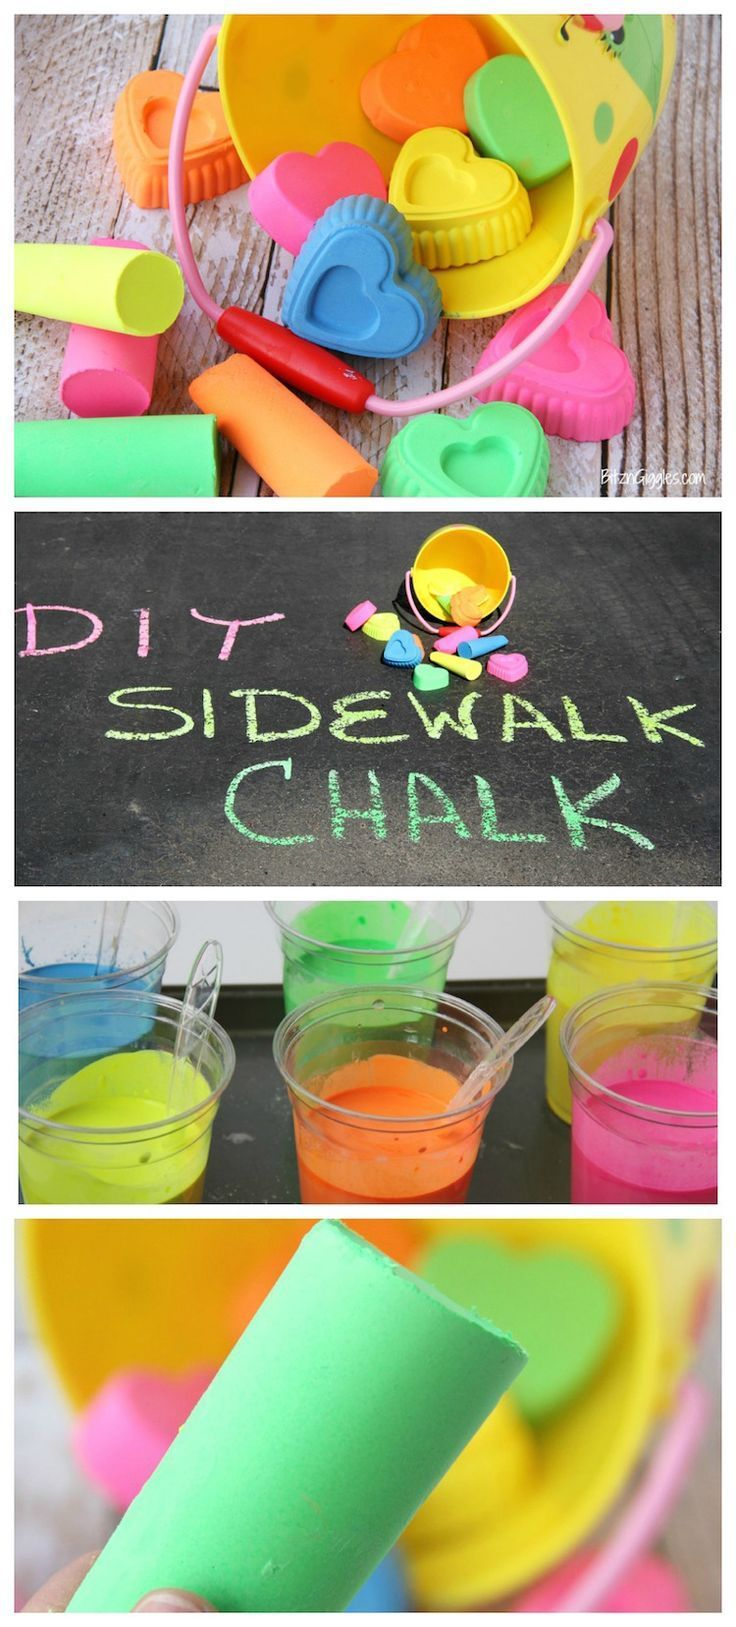 How to make SCENTED sidewalk chalk! We must try this!